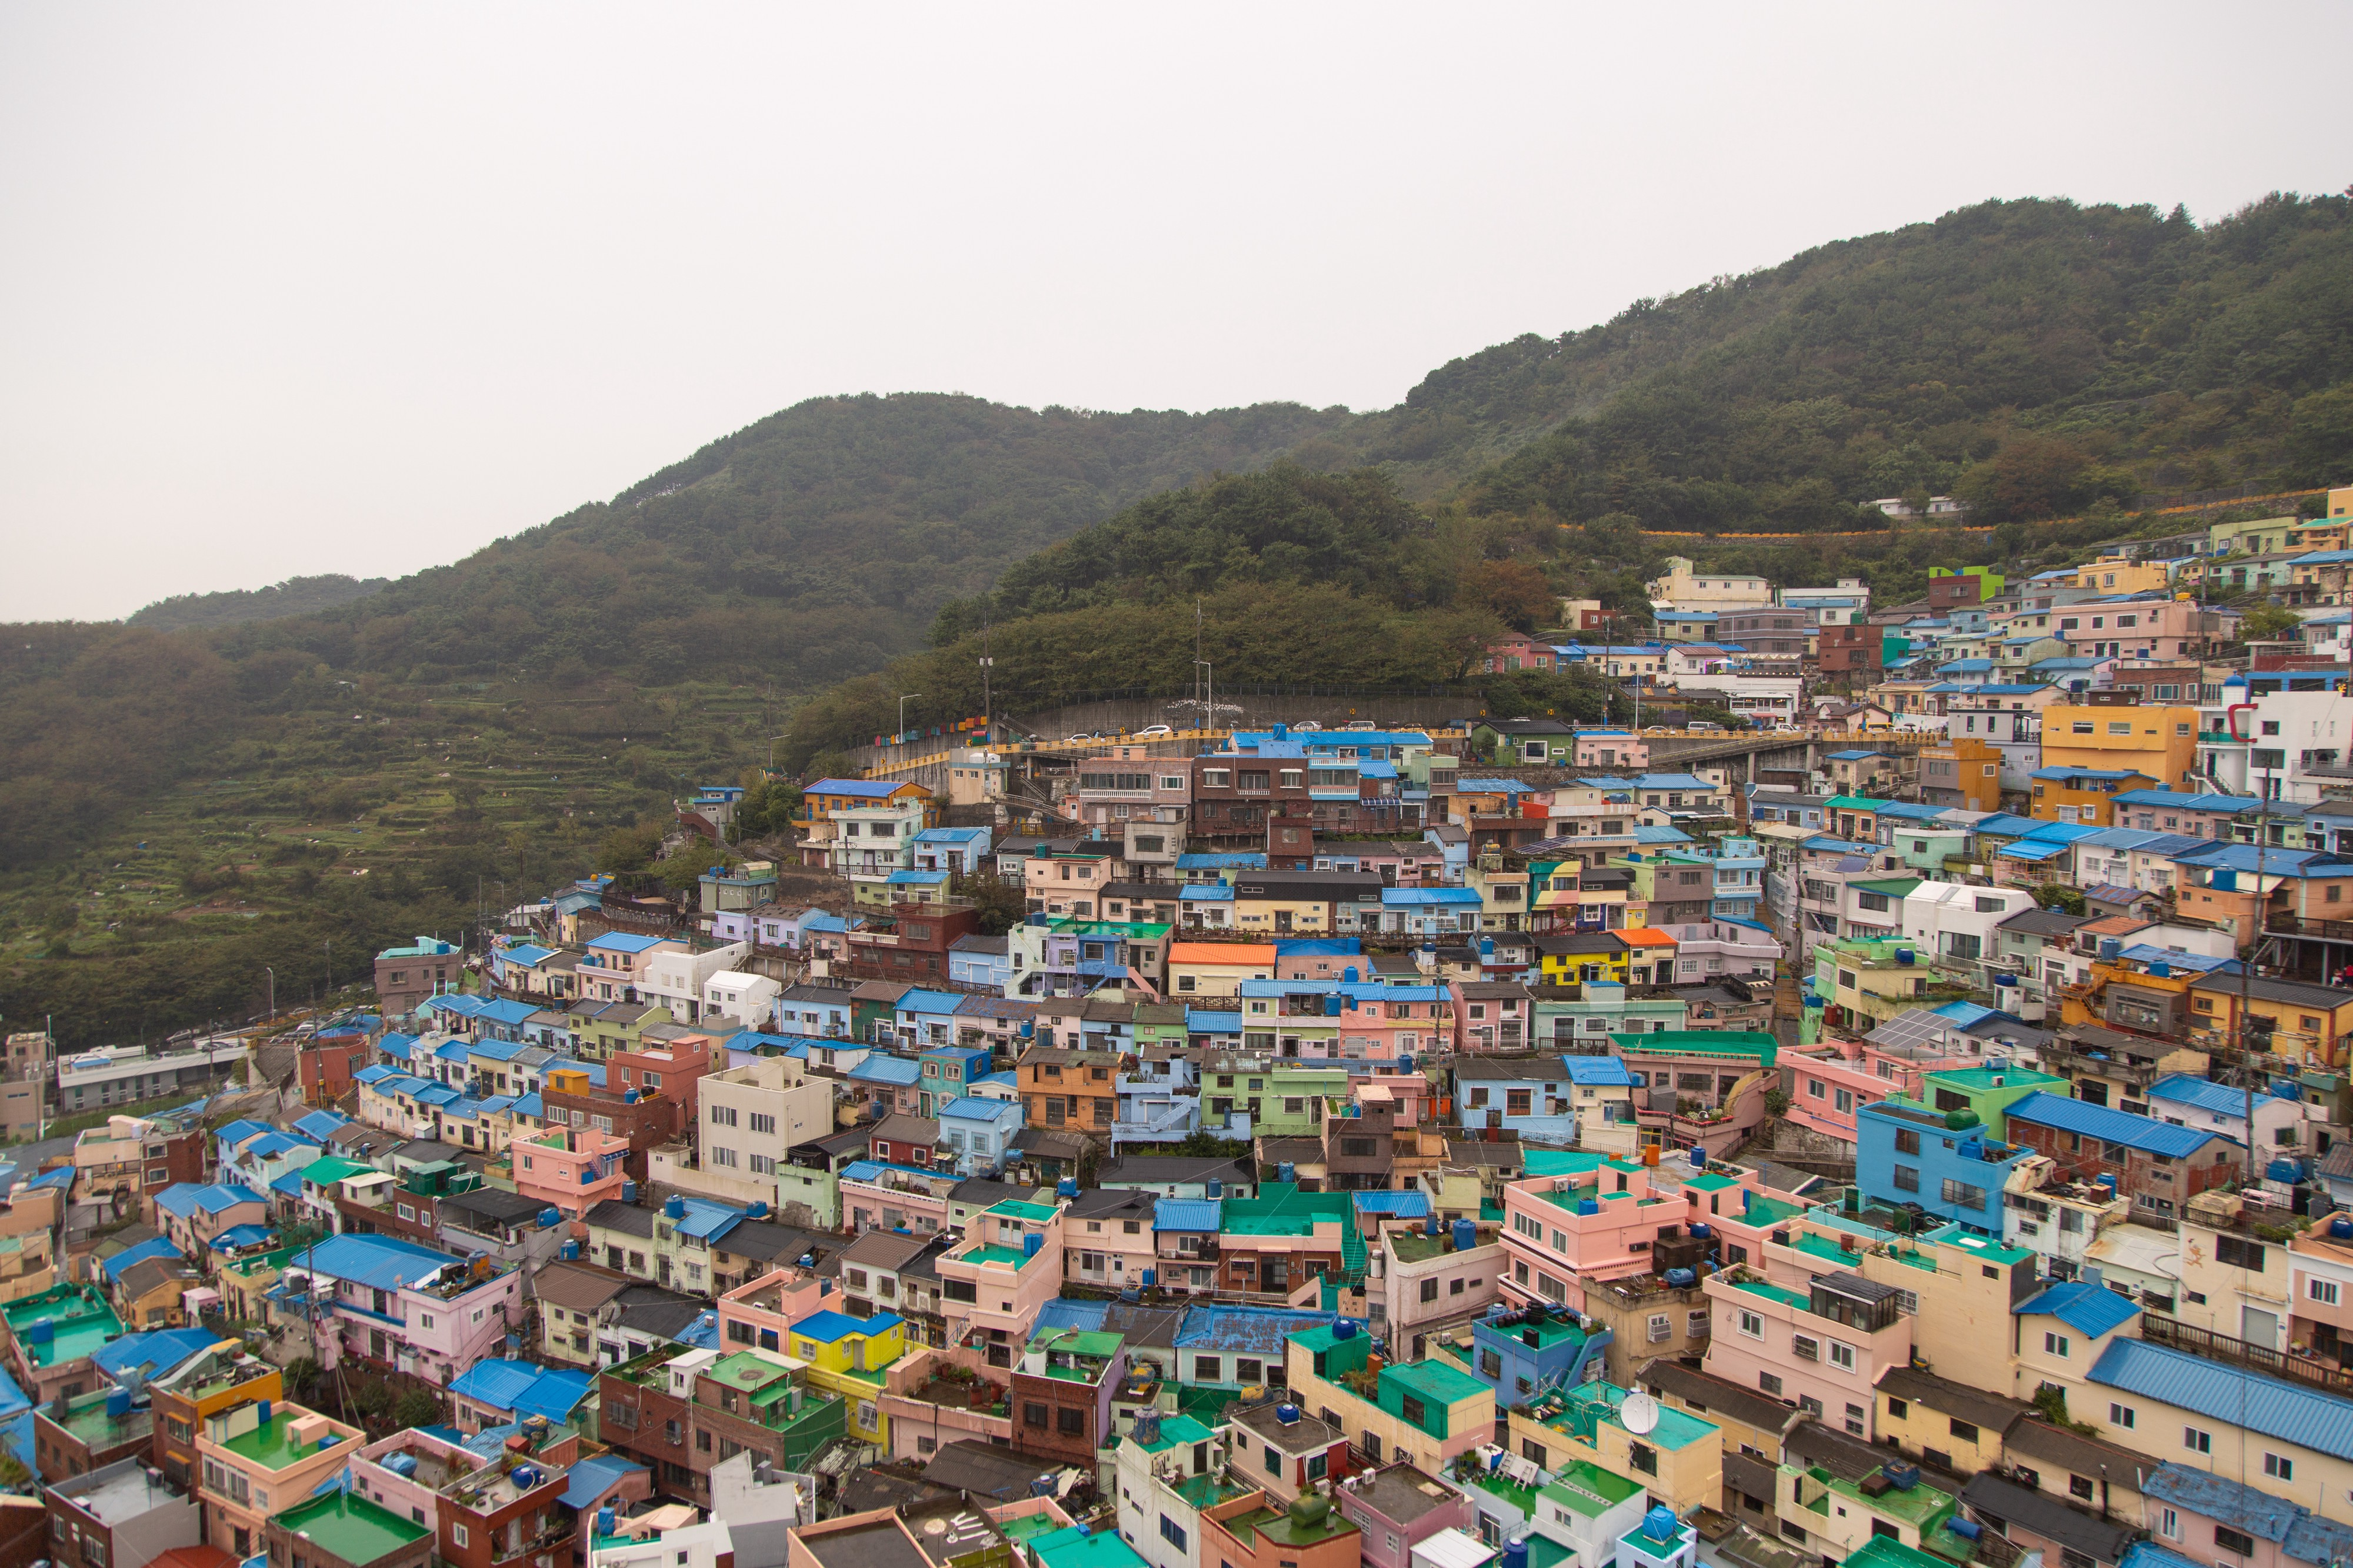 A city with colorful buildings.